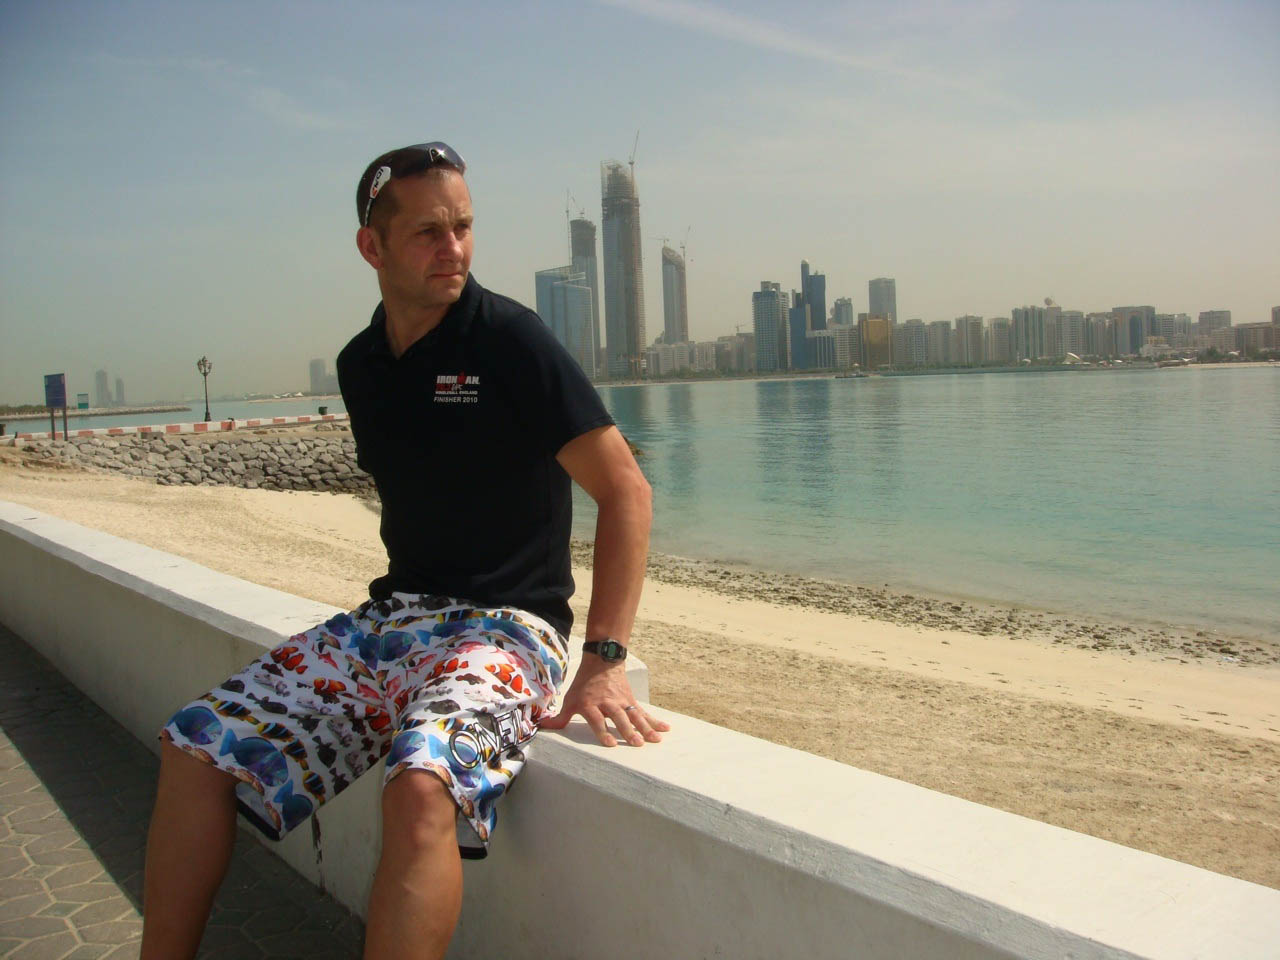 Paul's role includes making sure that all children have the opportunity to learn to swim